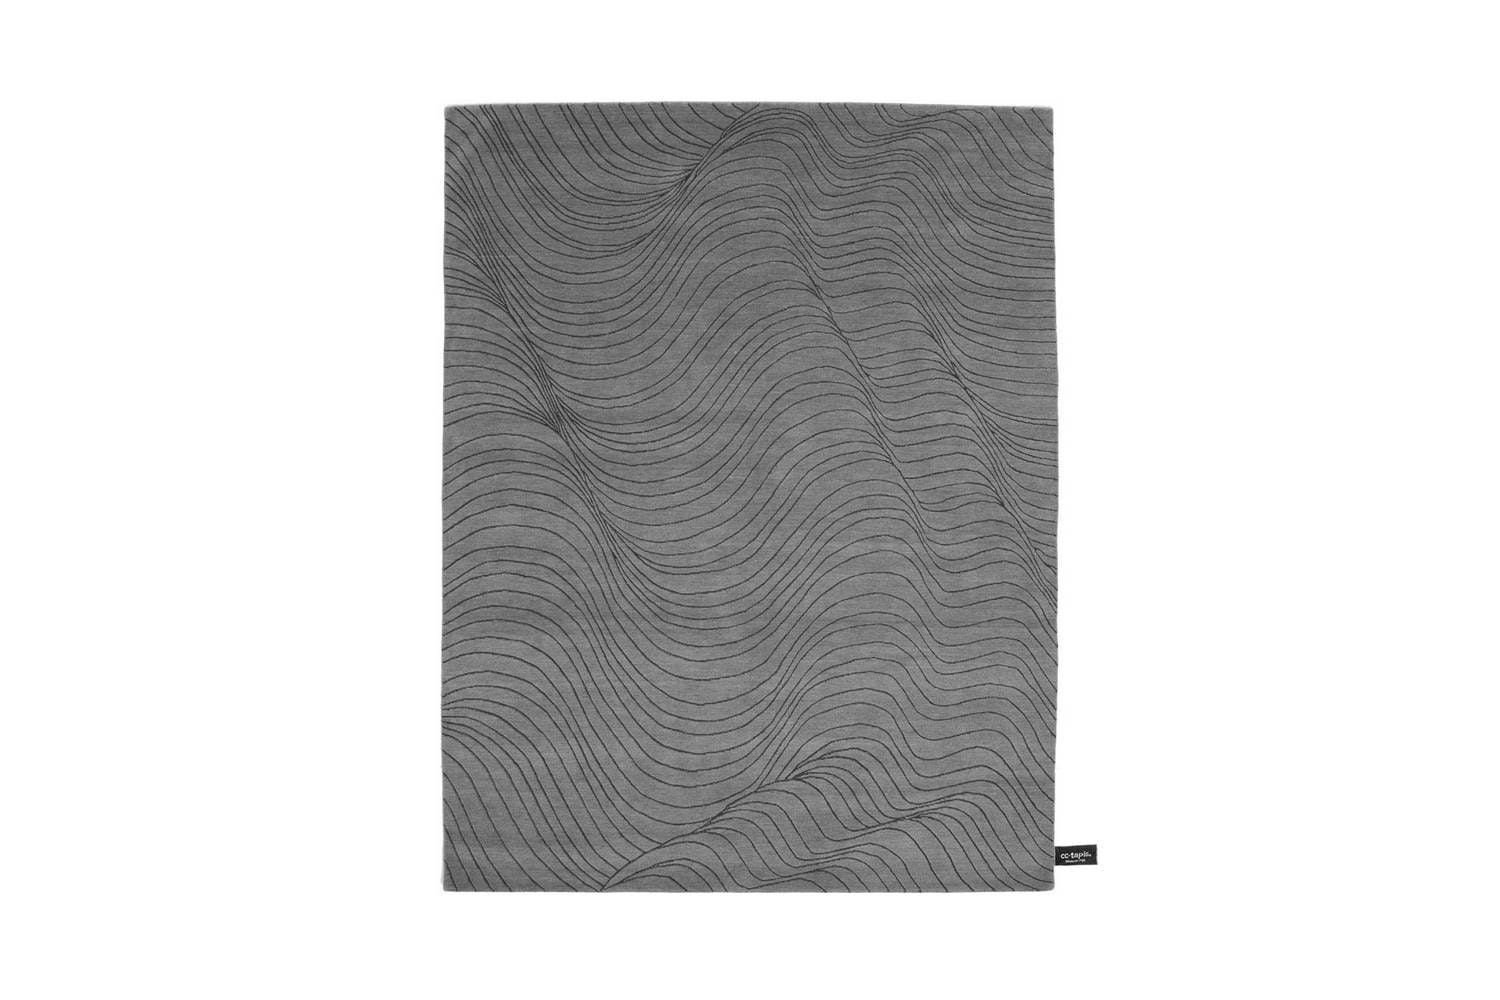 Skin Rug by Kostantia Manthou for CC-Tapis